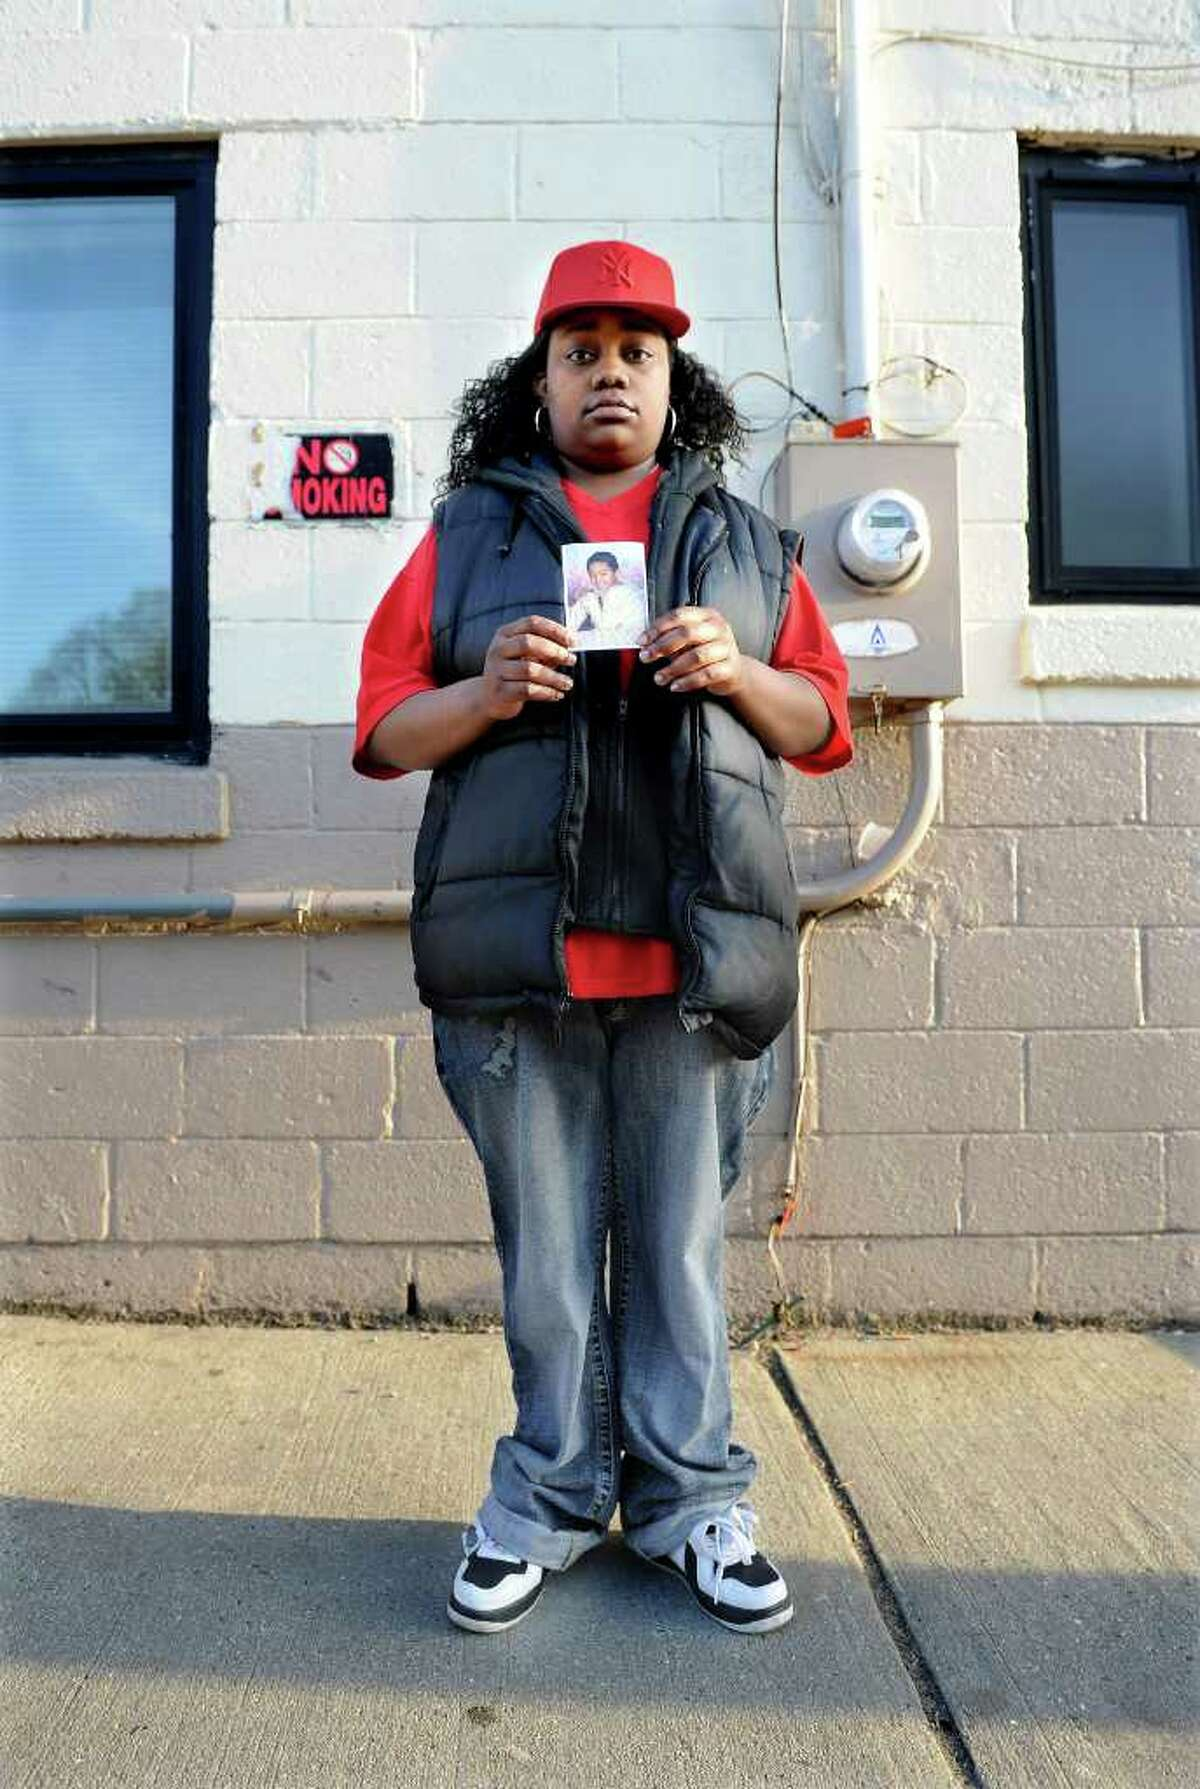 Tanya McDowell stands outside the Norwalk Emergency Shelter with a photo of her son, A.J. Paches, on Wednesday, April 20, 2011. McDowell, who is homeless and lives in her van, was arrested after enrolling her son in the Norwalk City School District.